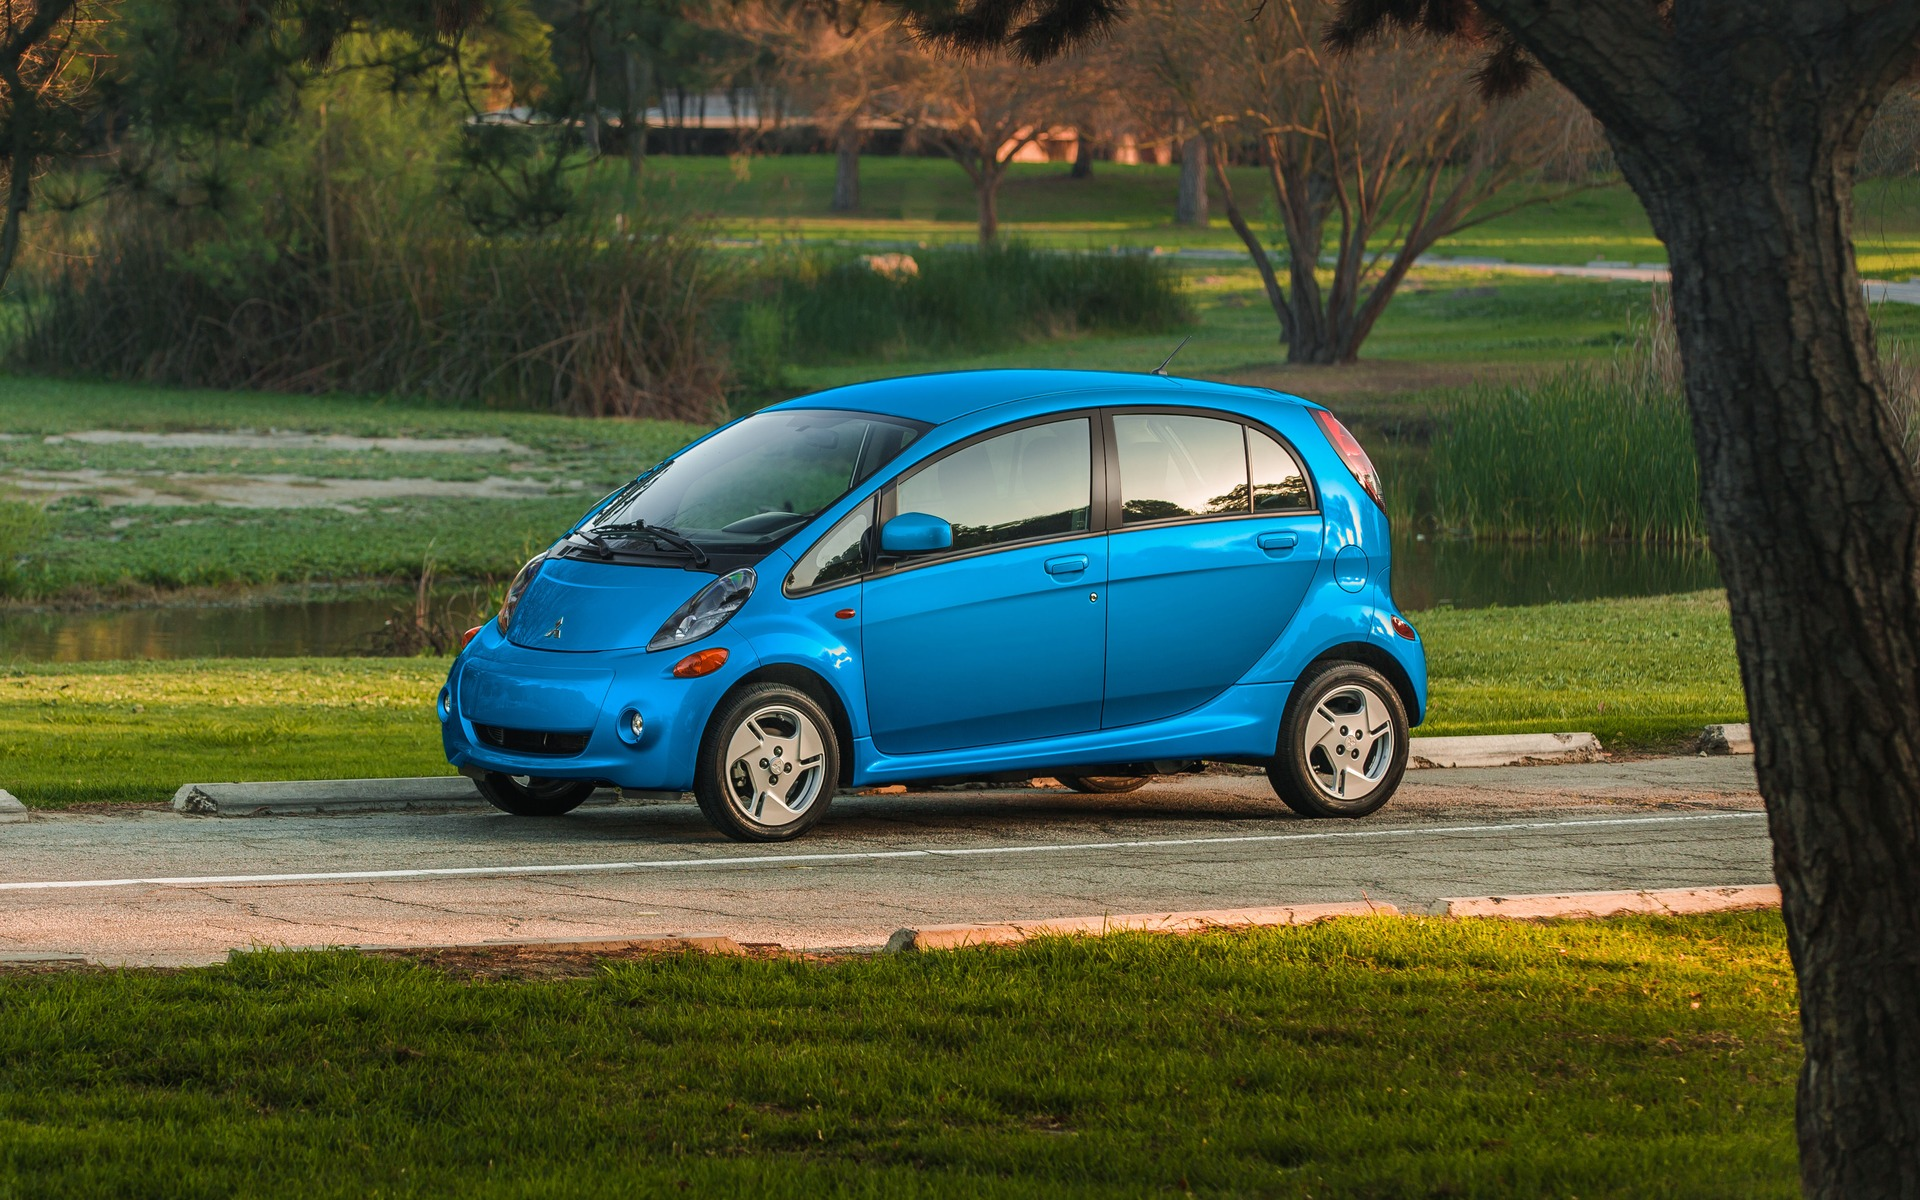 d deals htm mitsubishi sale prices miev cicero new specials lease for and i ny finance heroimage